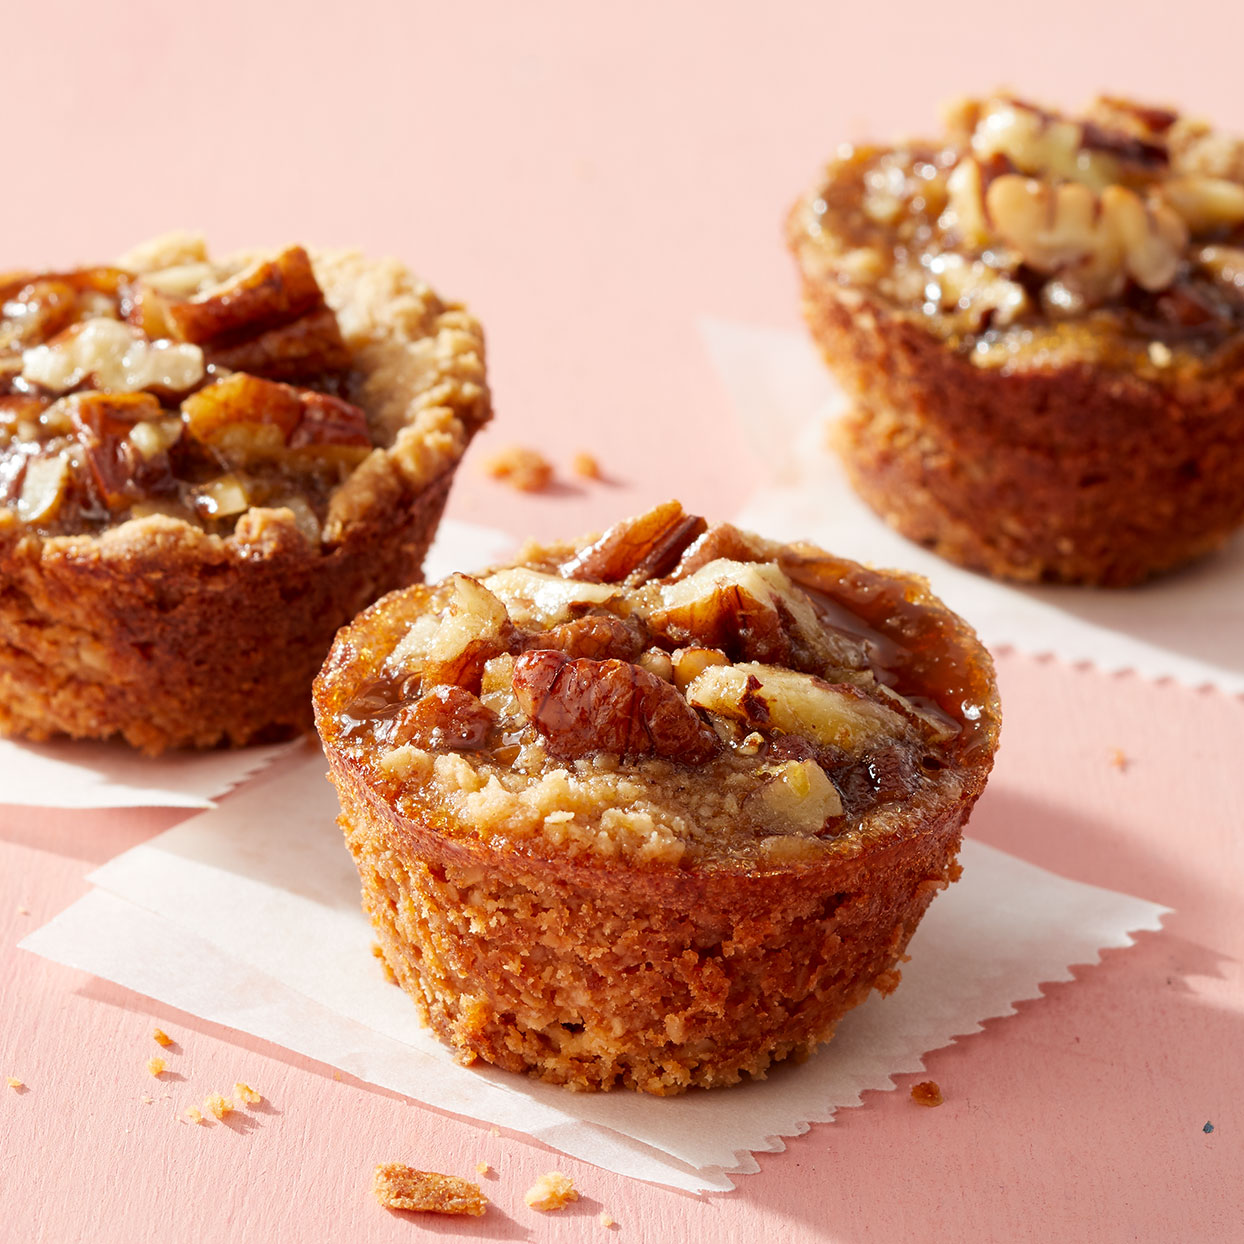 The key to these decadent treats is the portion size--baking them in mini-muffin tins keeps the carbs and saturated fat in check. And maple syrup allows you to make this pecan pie recipe without corn syrup. Source: Diabetic Living Magazine, Winter 2020